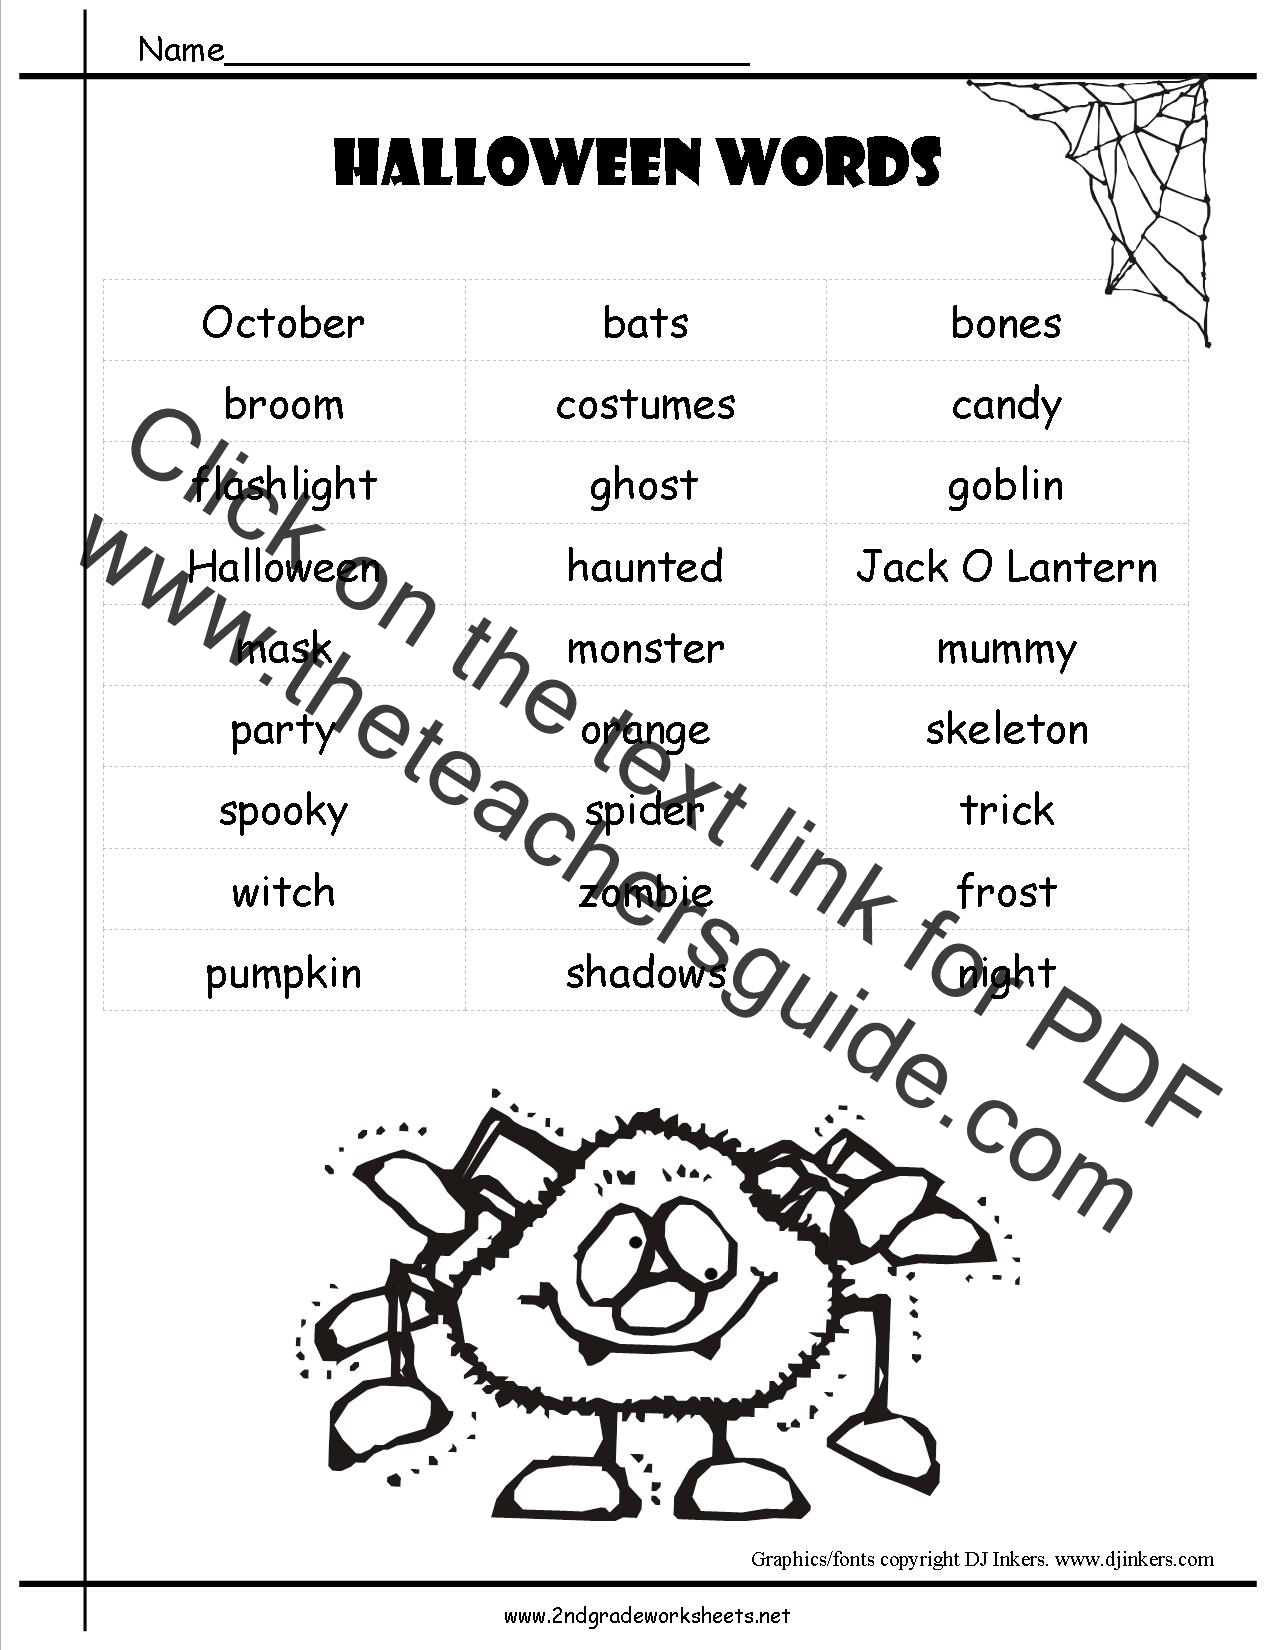 Vocabulary Words List